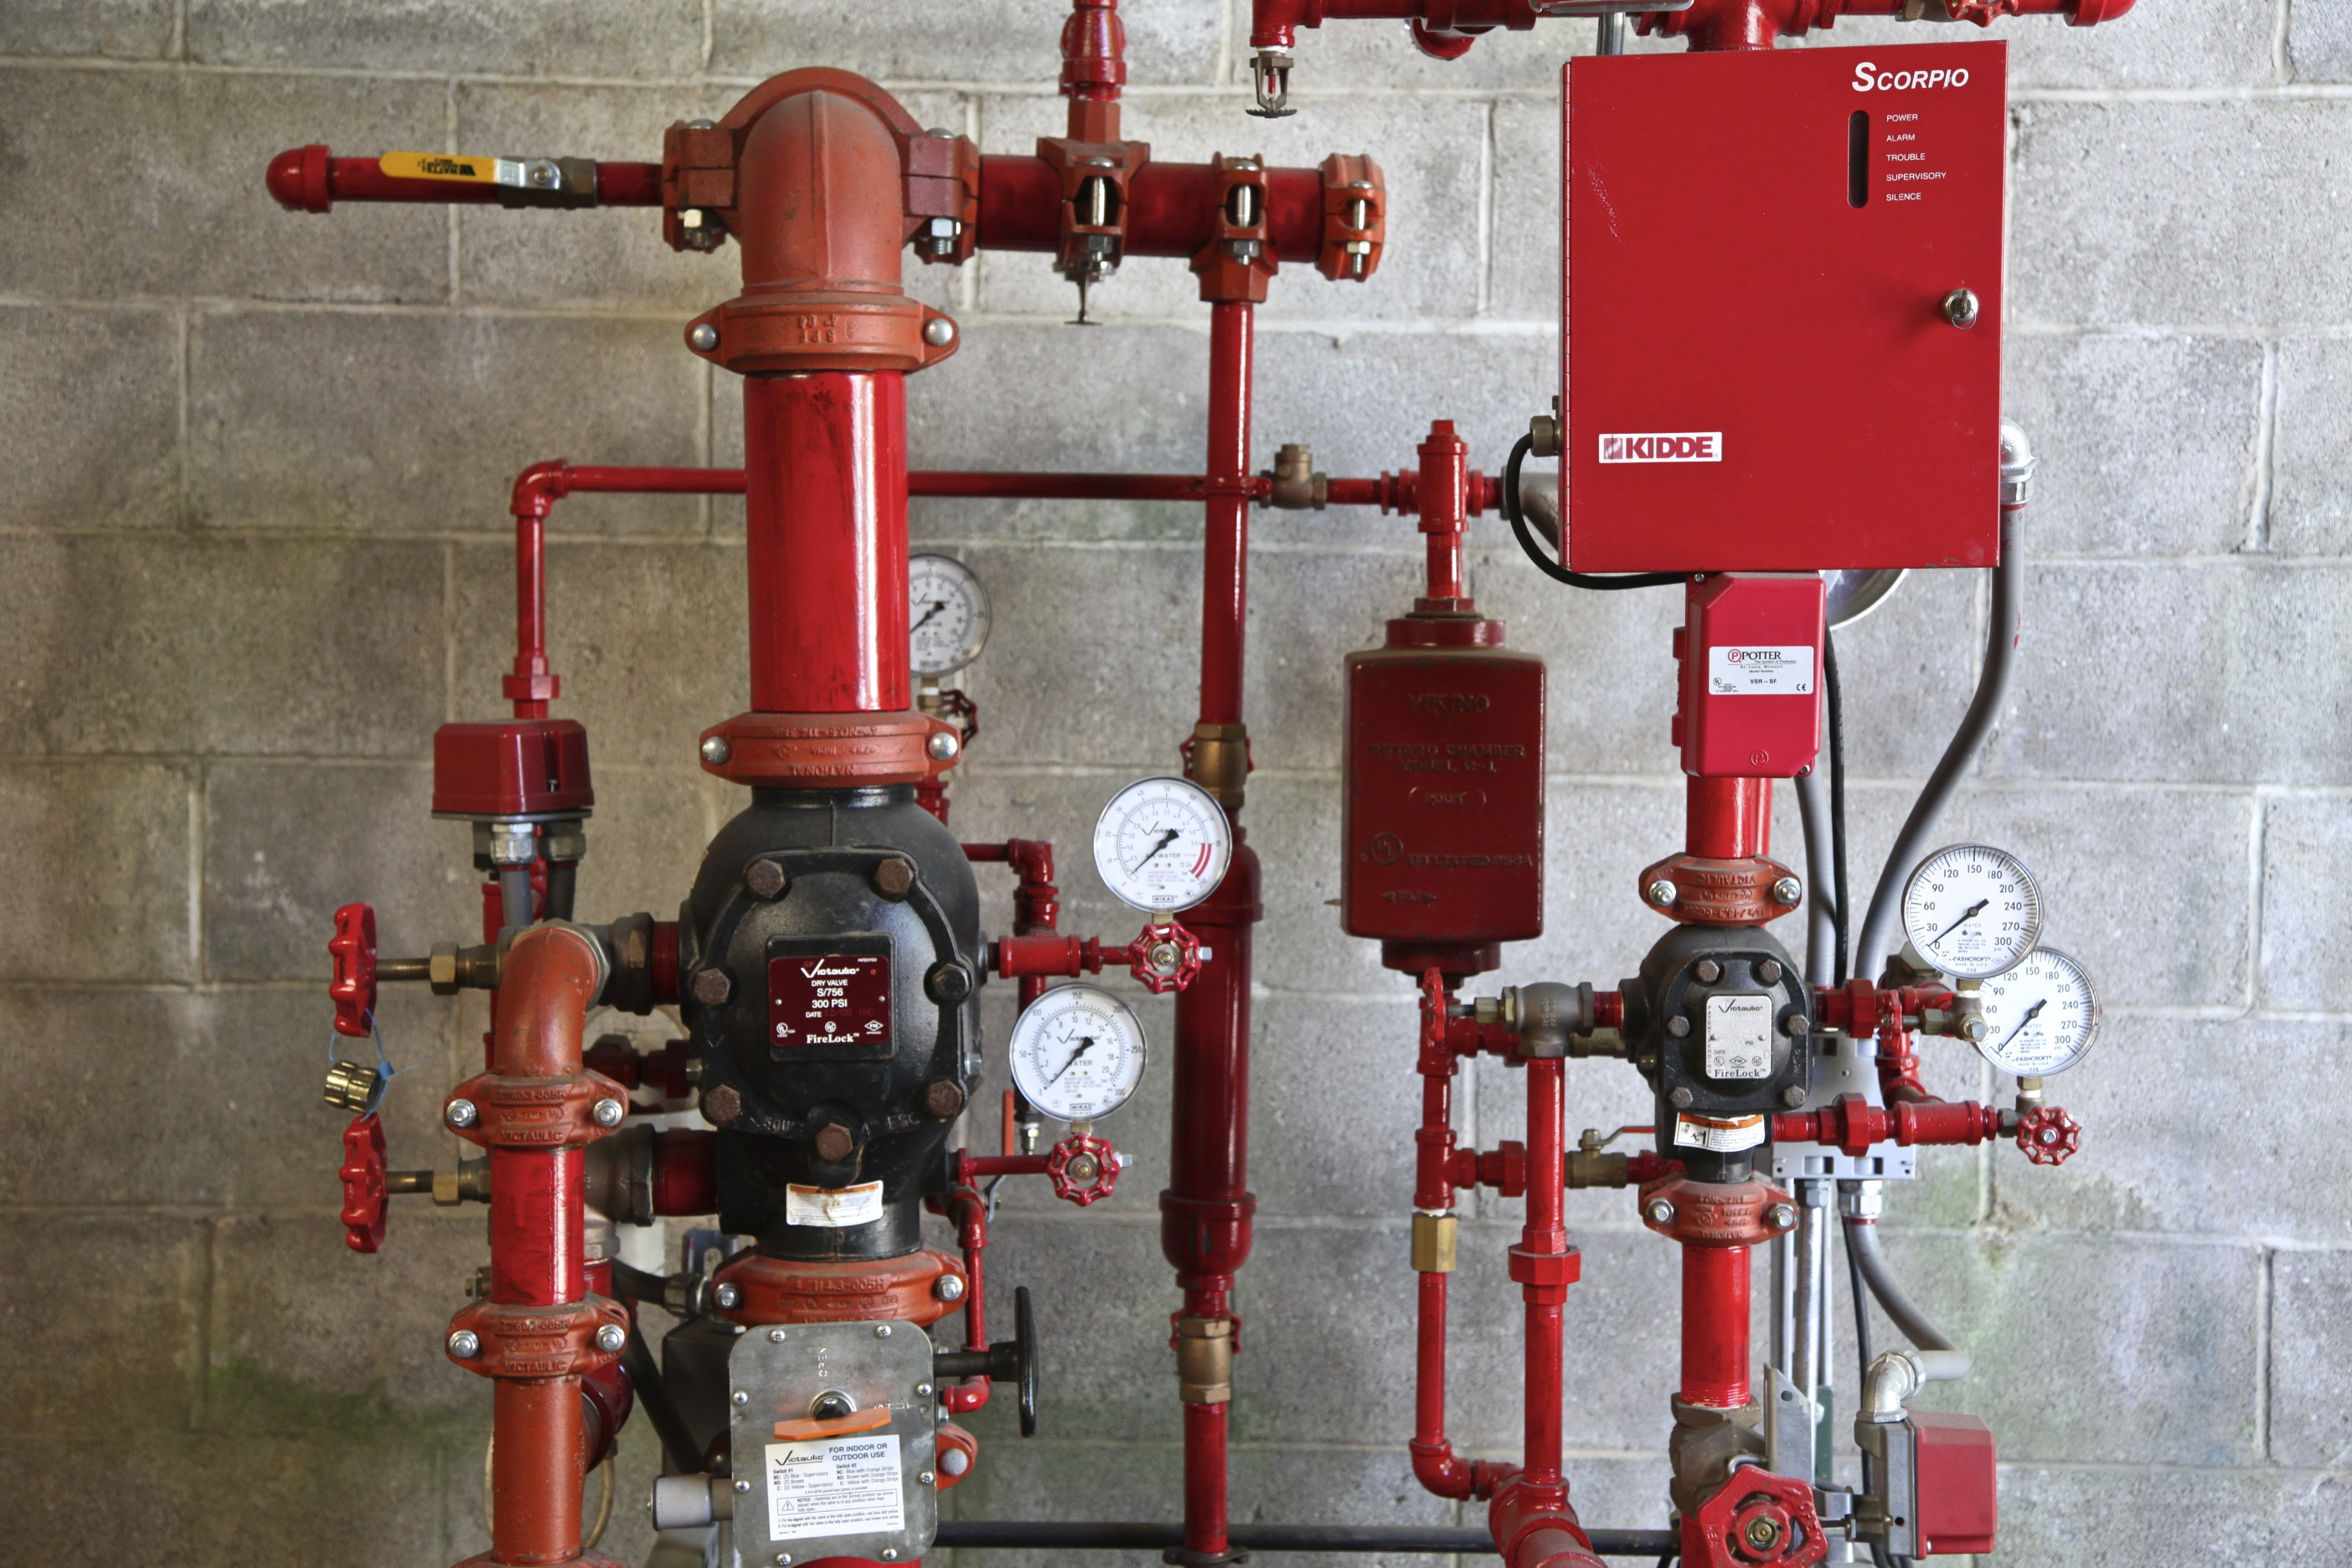 Axis En System Diagram in addition Normally Closed Stop Button also Firefightingsystems1 blogspot also Automatic Opening Vents additionally Winter Maintenance On Your Wet Or Dry Sprinkler System. on fire alarm system riser diagram